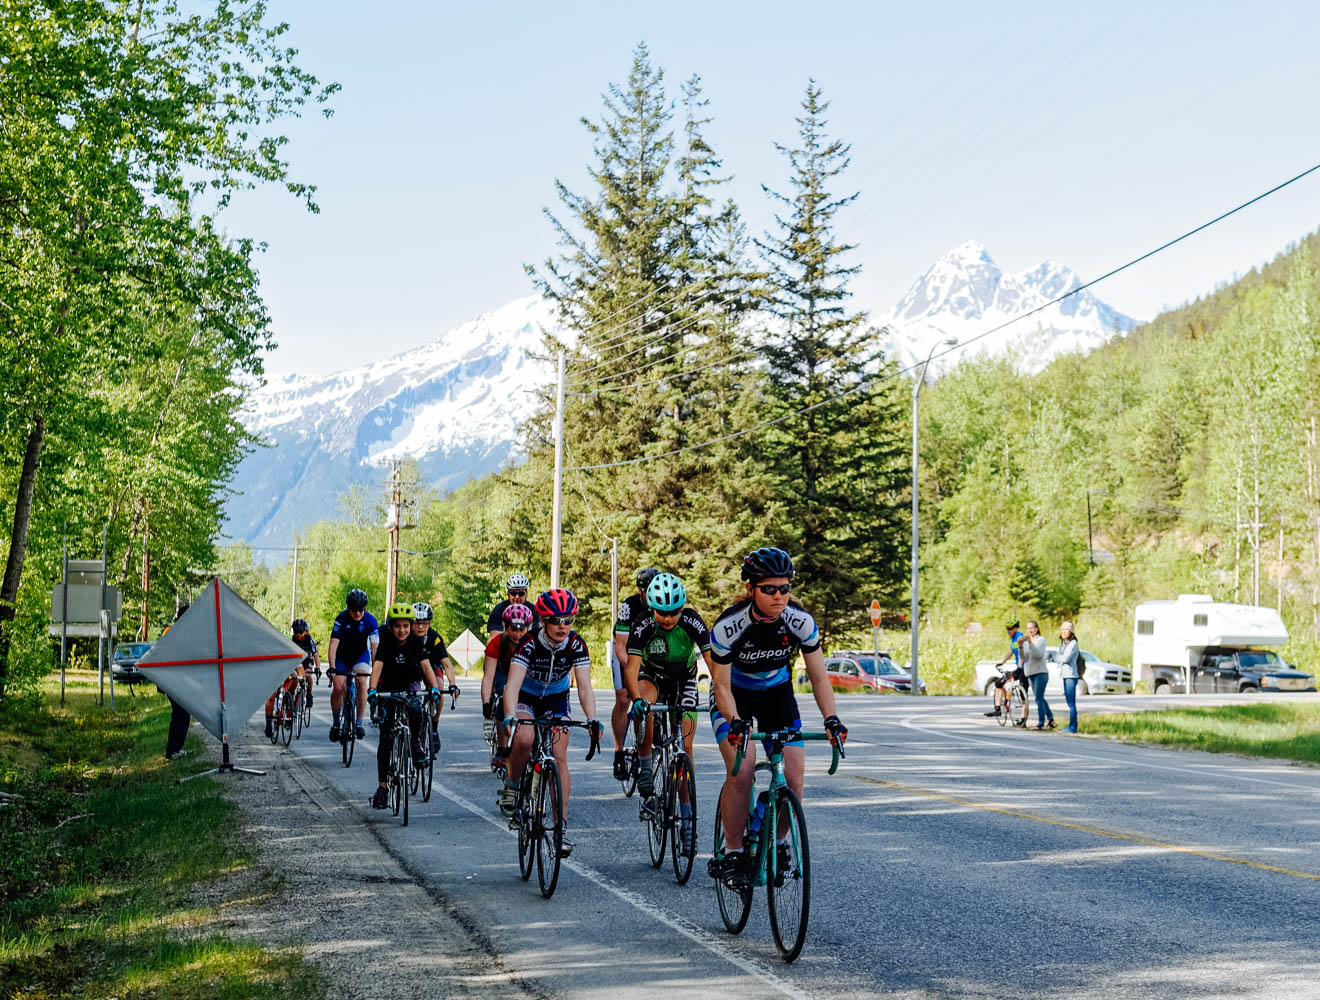 The start of the hill climb on Sunday morning in the green and lush Coastal forest of Skagway, AK.